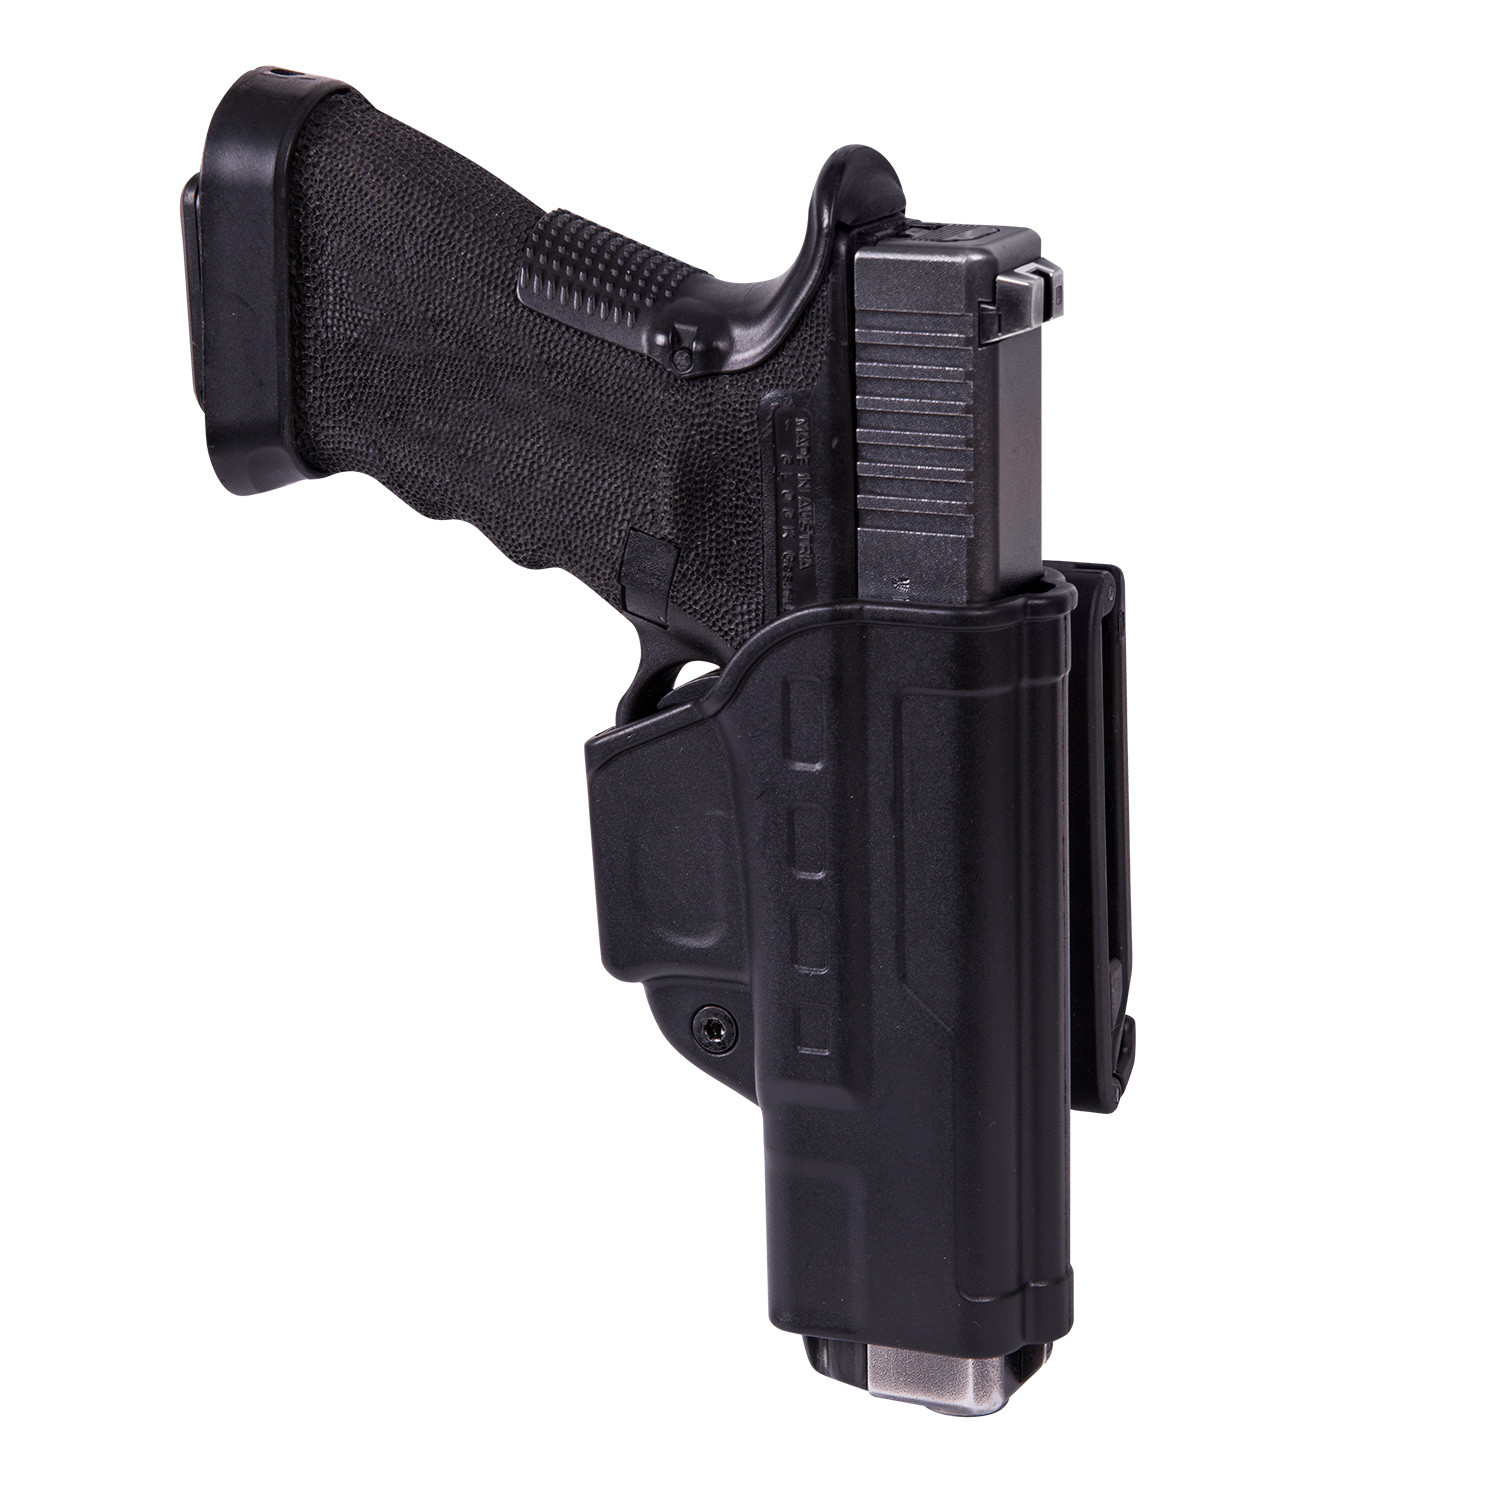 Fast Draw Holster for Glock 17 with Belt Clip - Military Grade Polymer